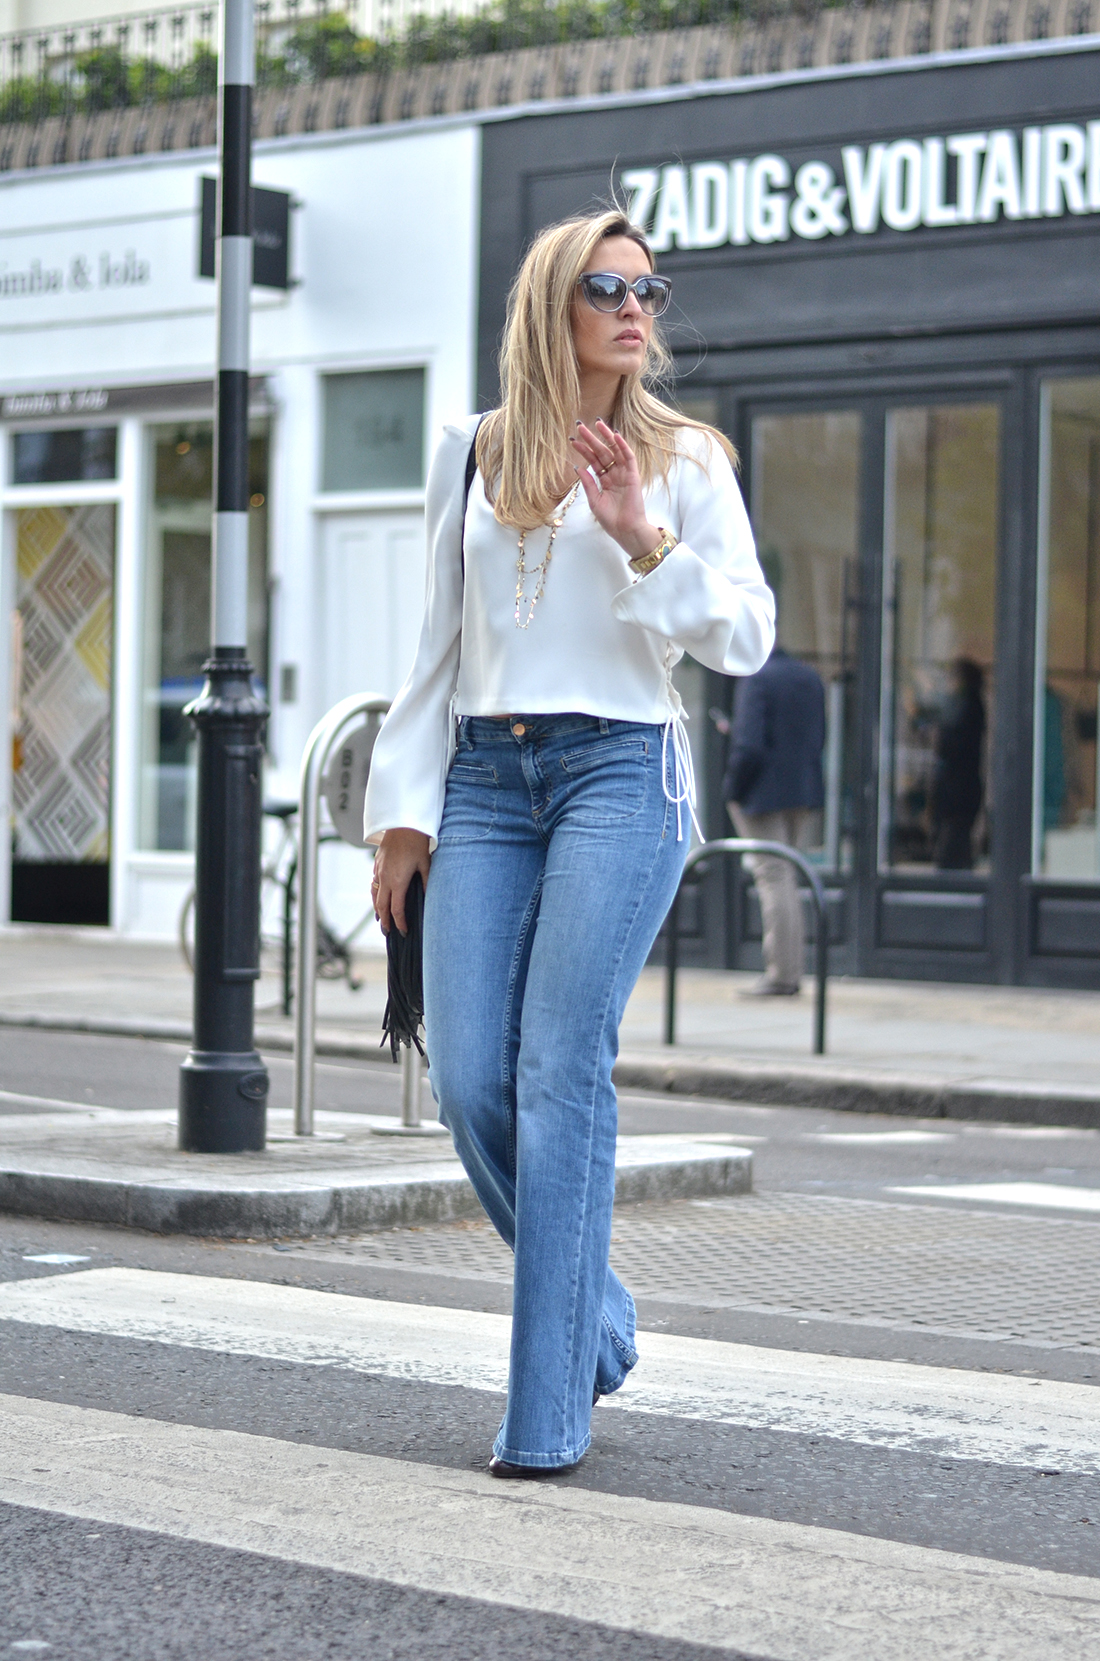 White Shirt And Jeans Female | Is Shirt